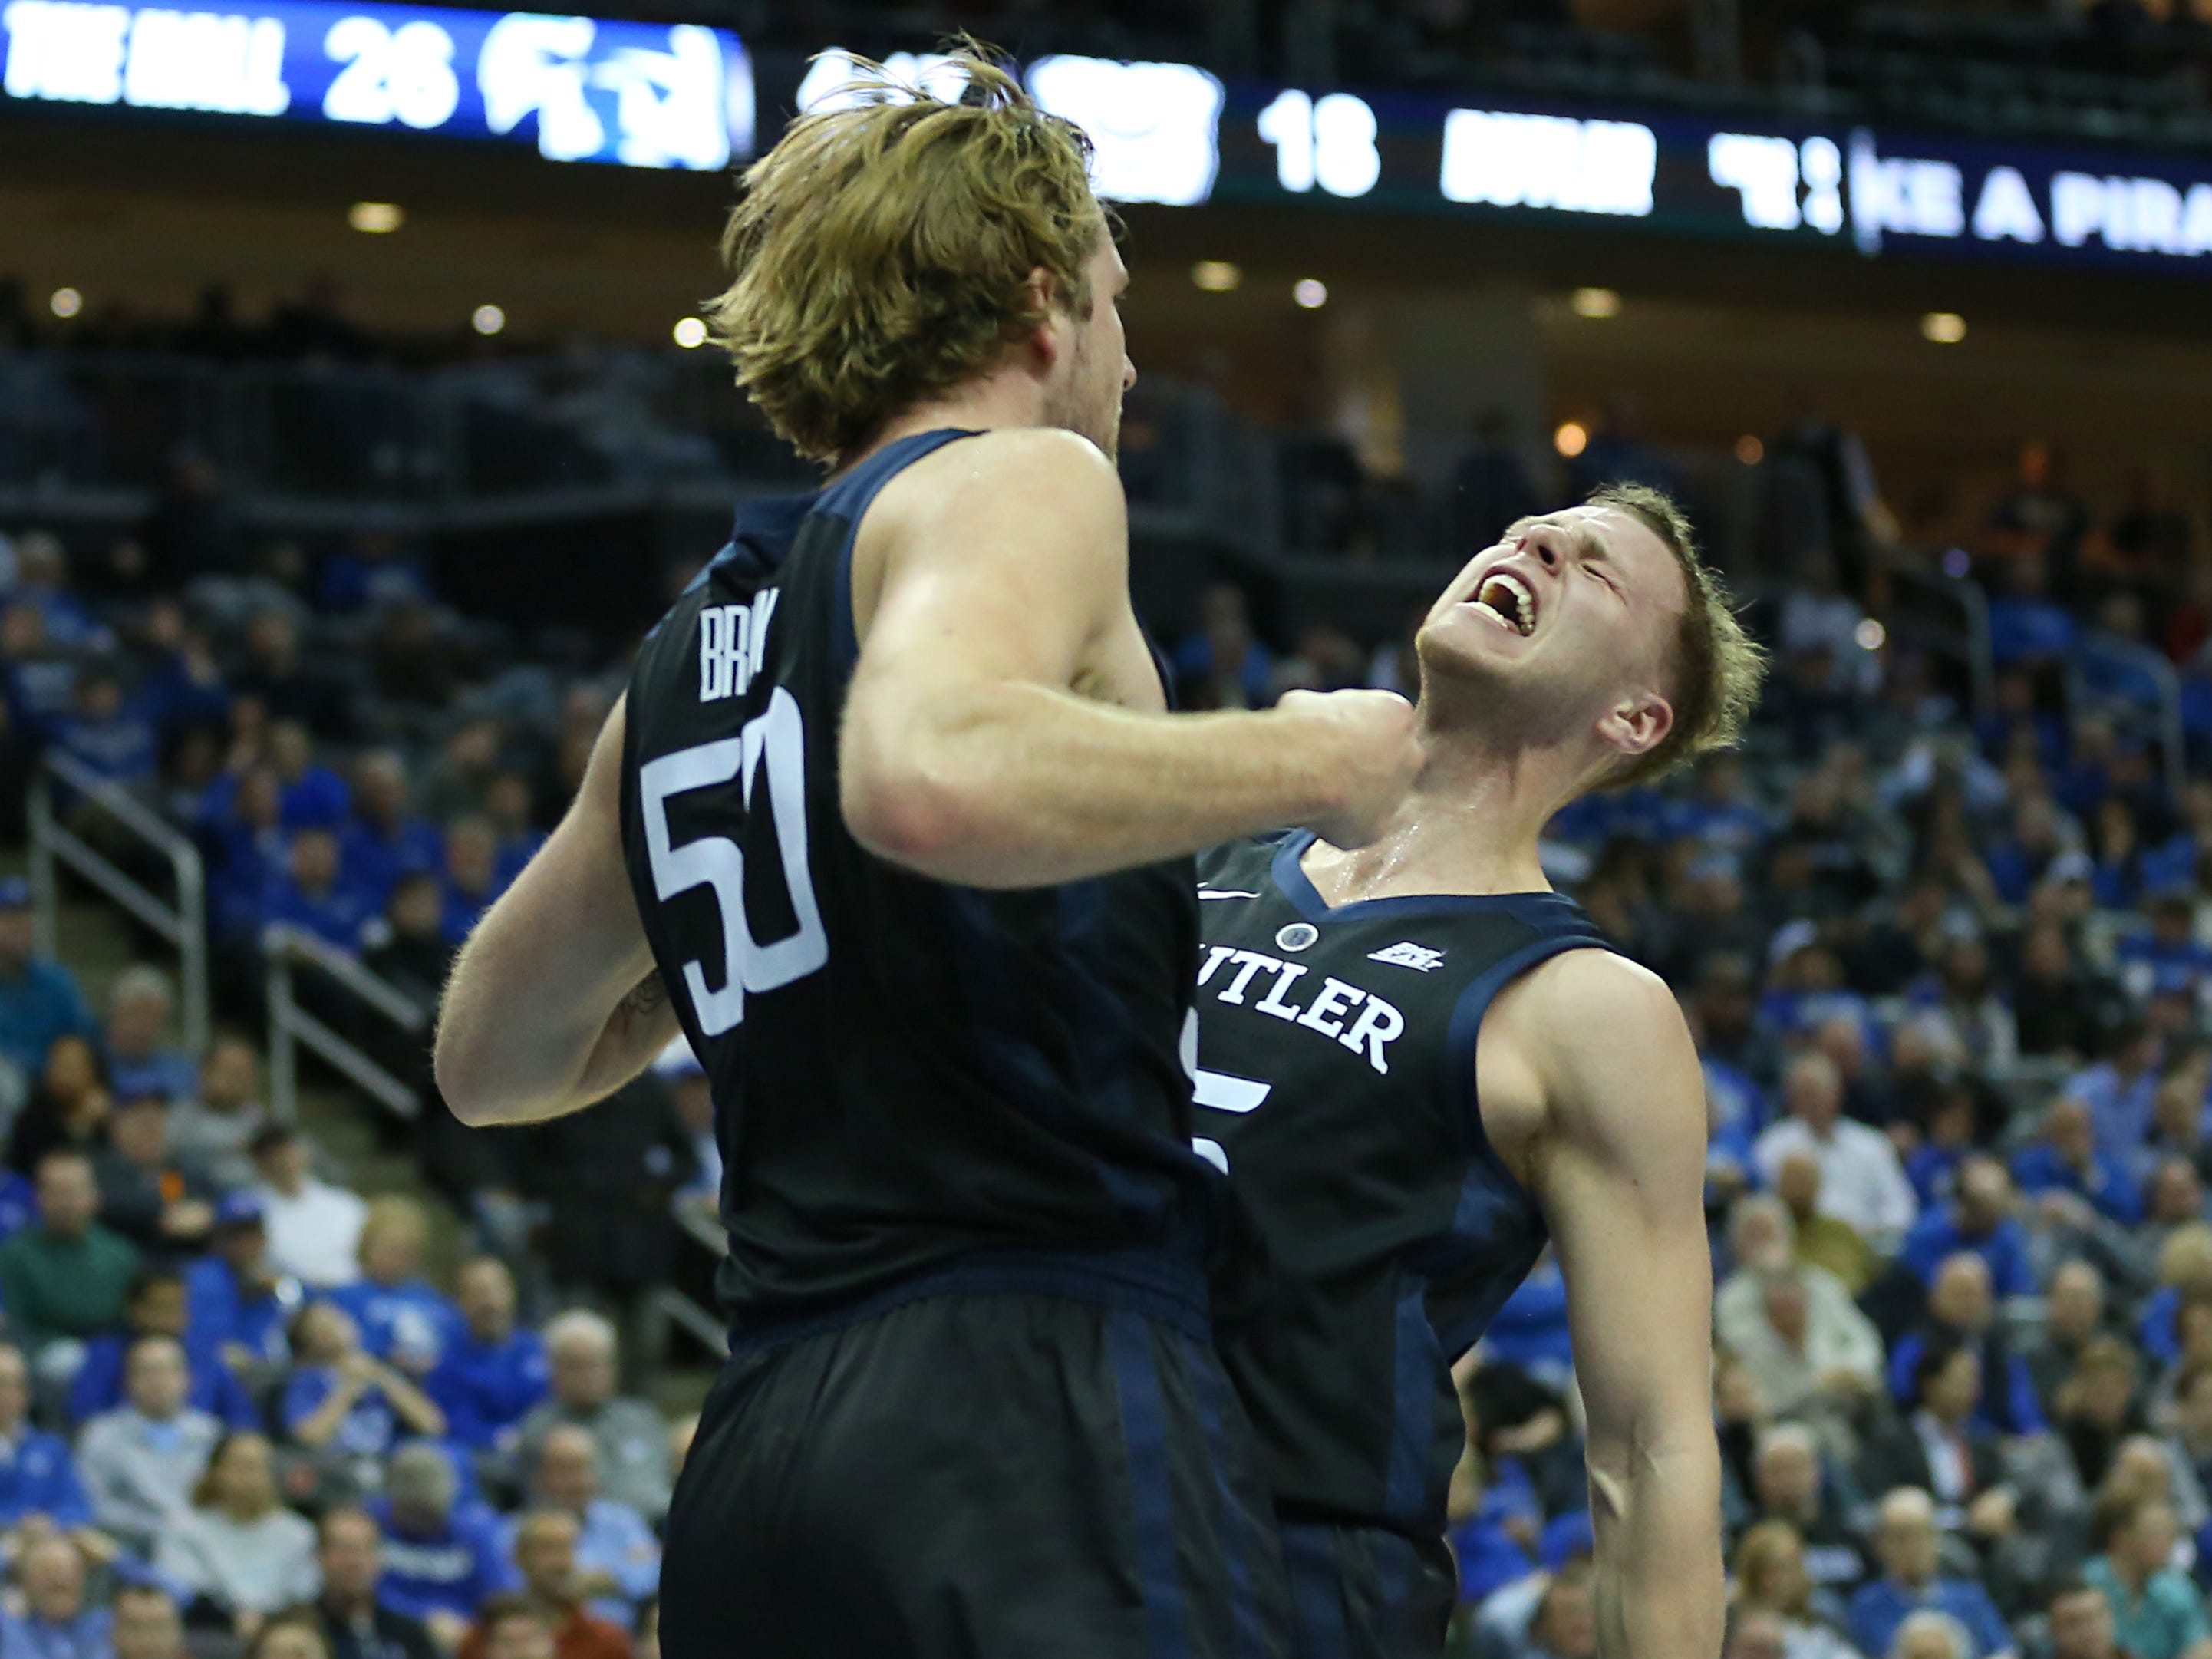 Jan 9, 2019; Newark, NJ, USA; Butler Bulldogs forward Joey Brunk (50) celebrates his basket with guard Paul Jorgensen (5) during the first half against the Seton Hall Pirates at Prudential Center.